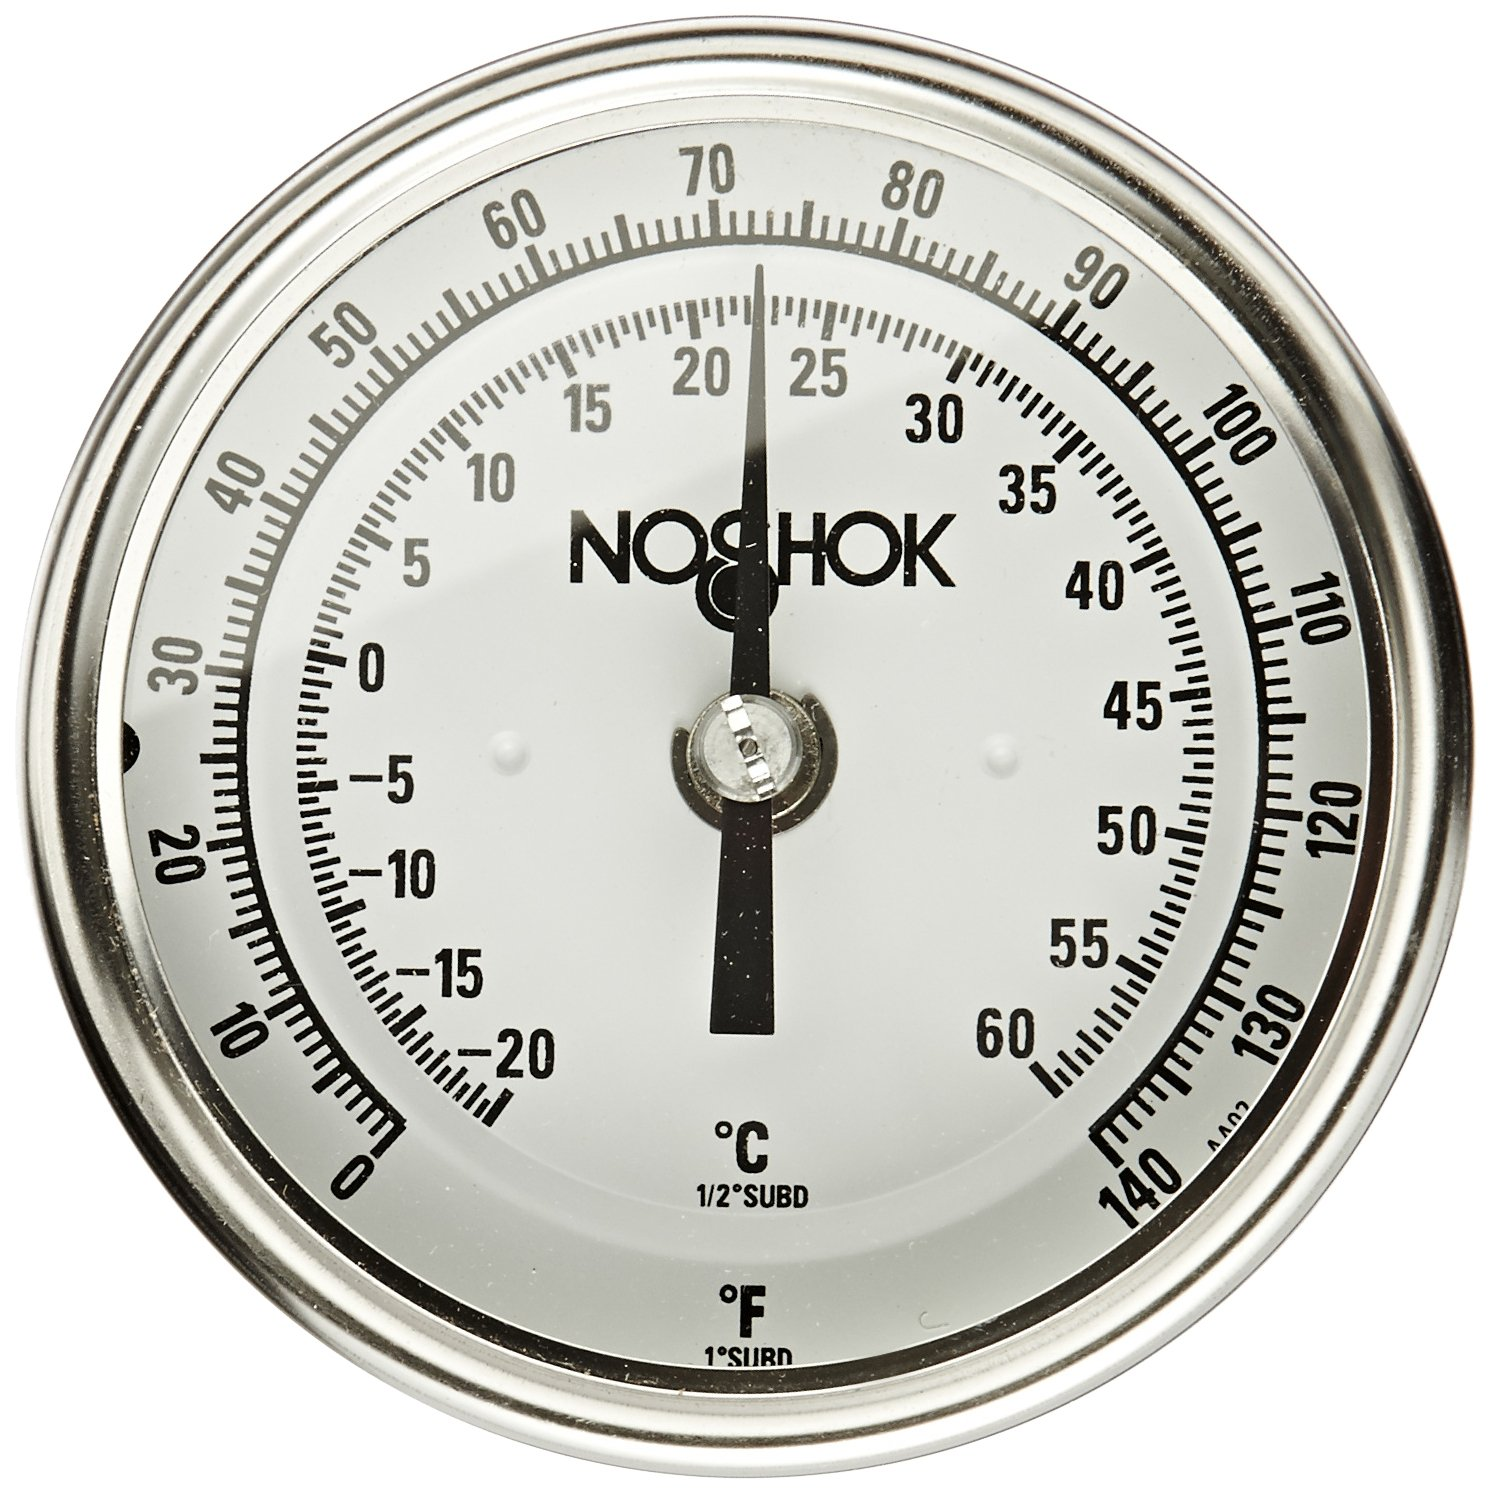 NOSHOK 300 Series 304 Stainless Steel Instrument Type Dual Scale Bi Metal Thermometer with Adjustable Angle Mount, 2-1/2'' Stem, 1/2'' NPT Connection, 3'' Dial, 50-300 F Temperature Range